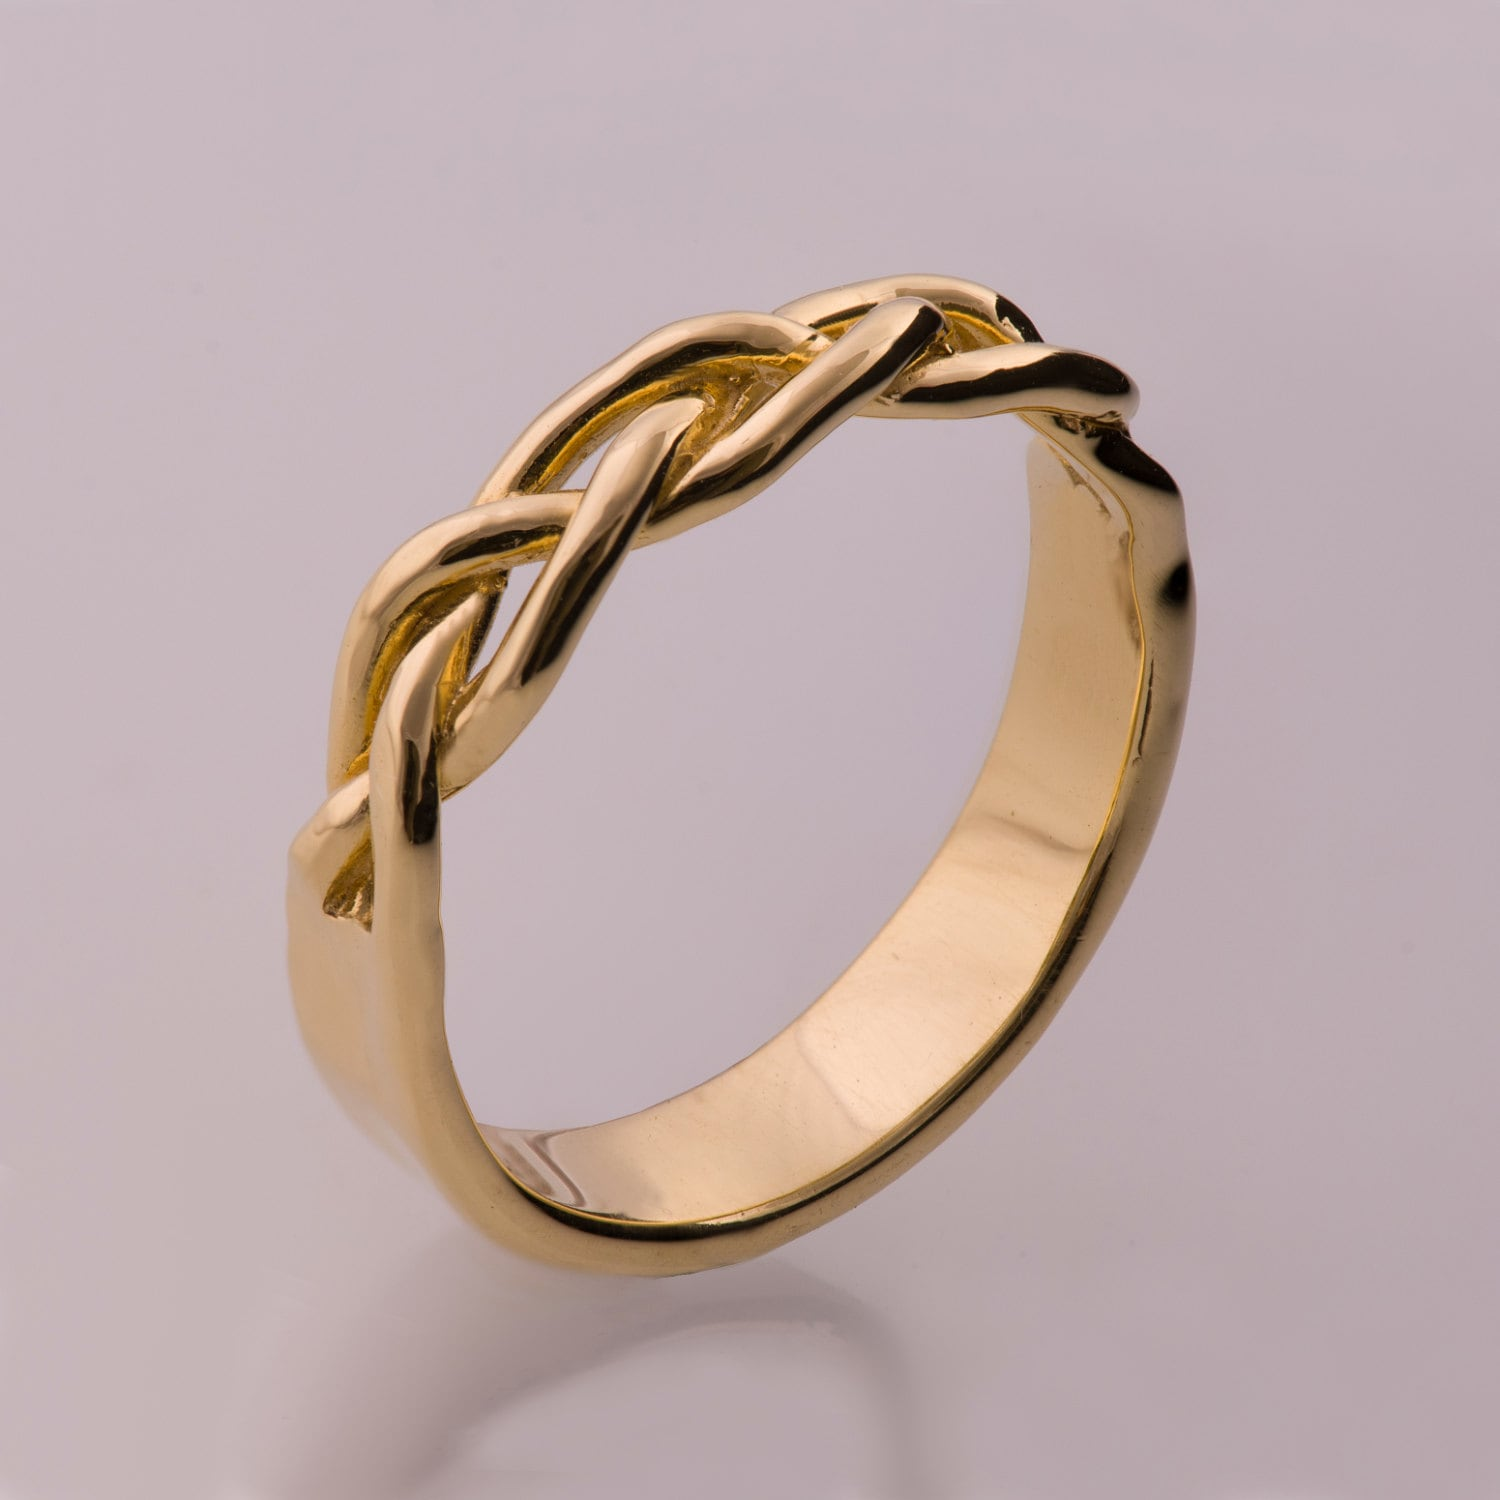 Braided Ring No6 14K Gold Stackable Ring Wedding Band